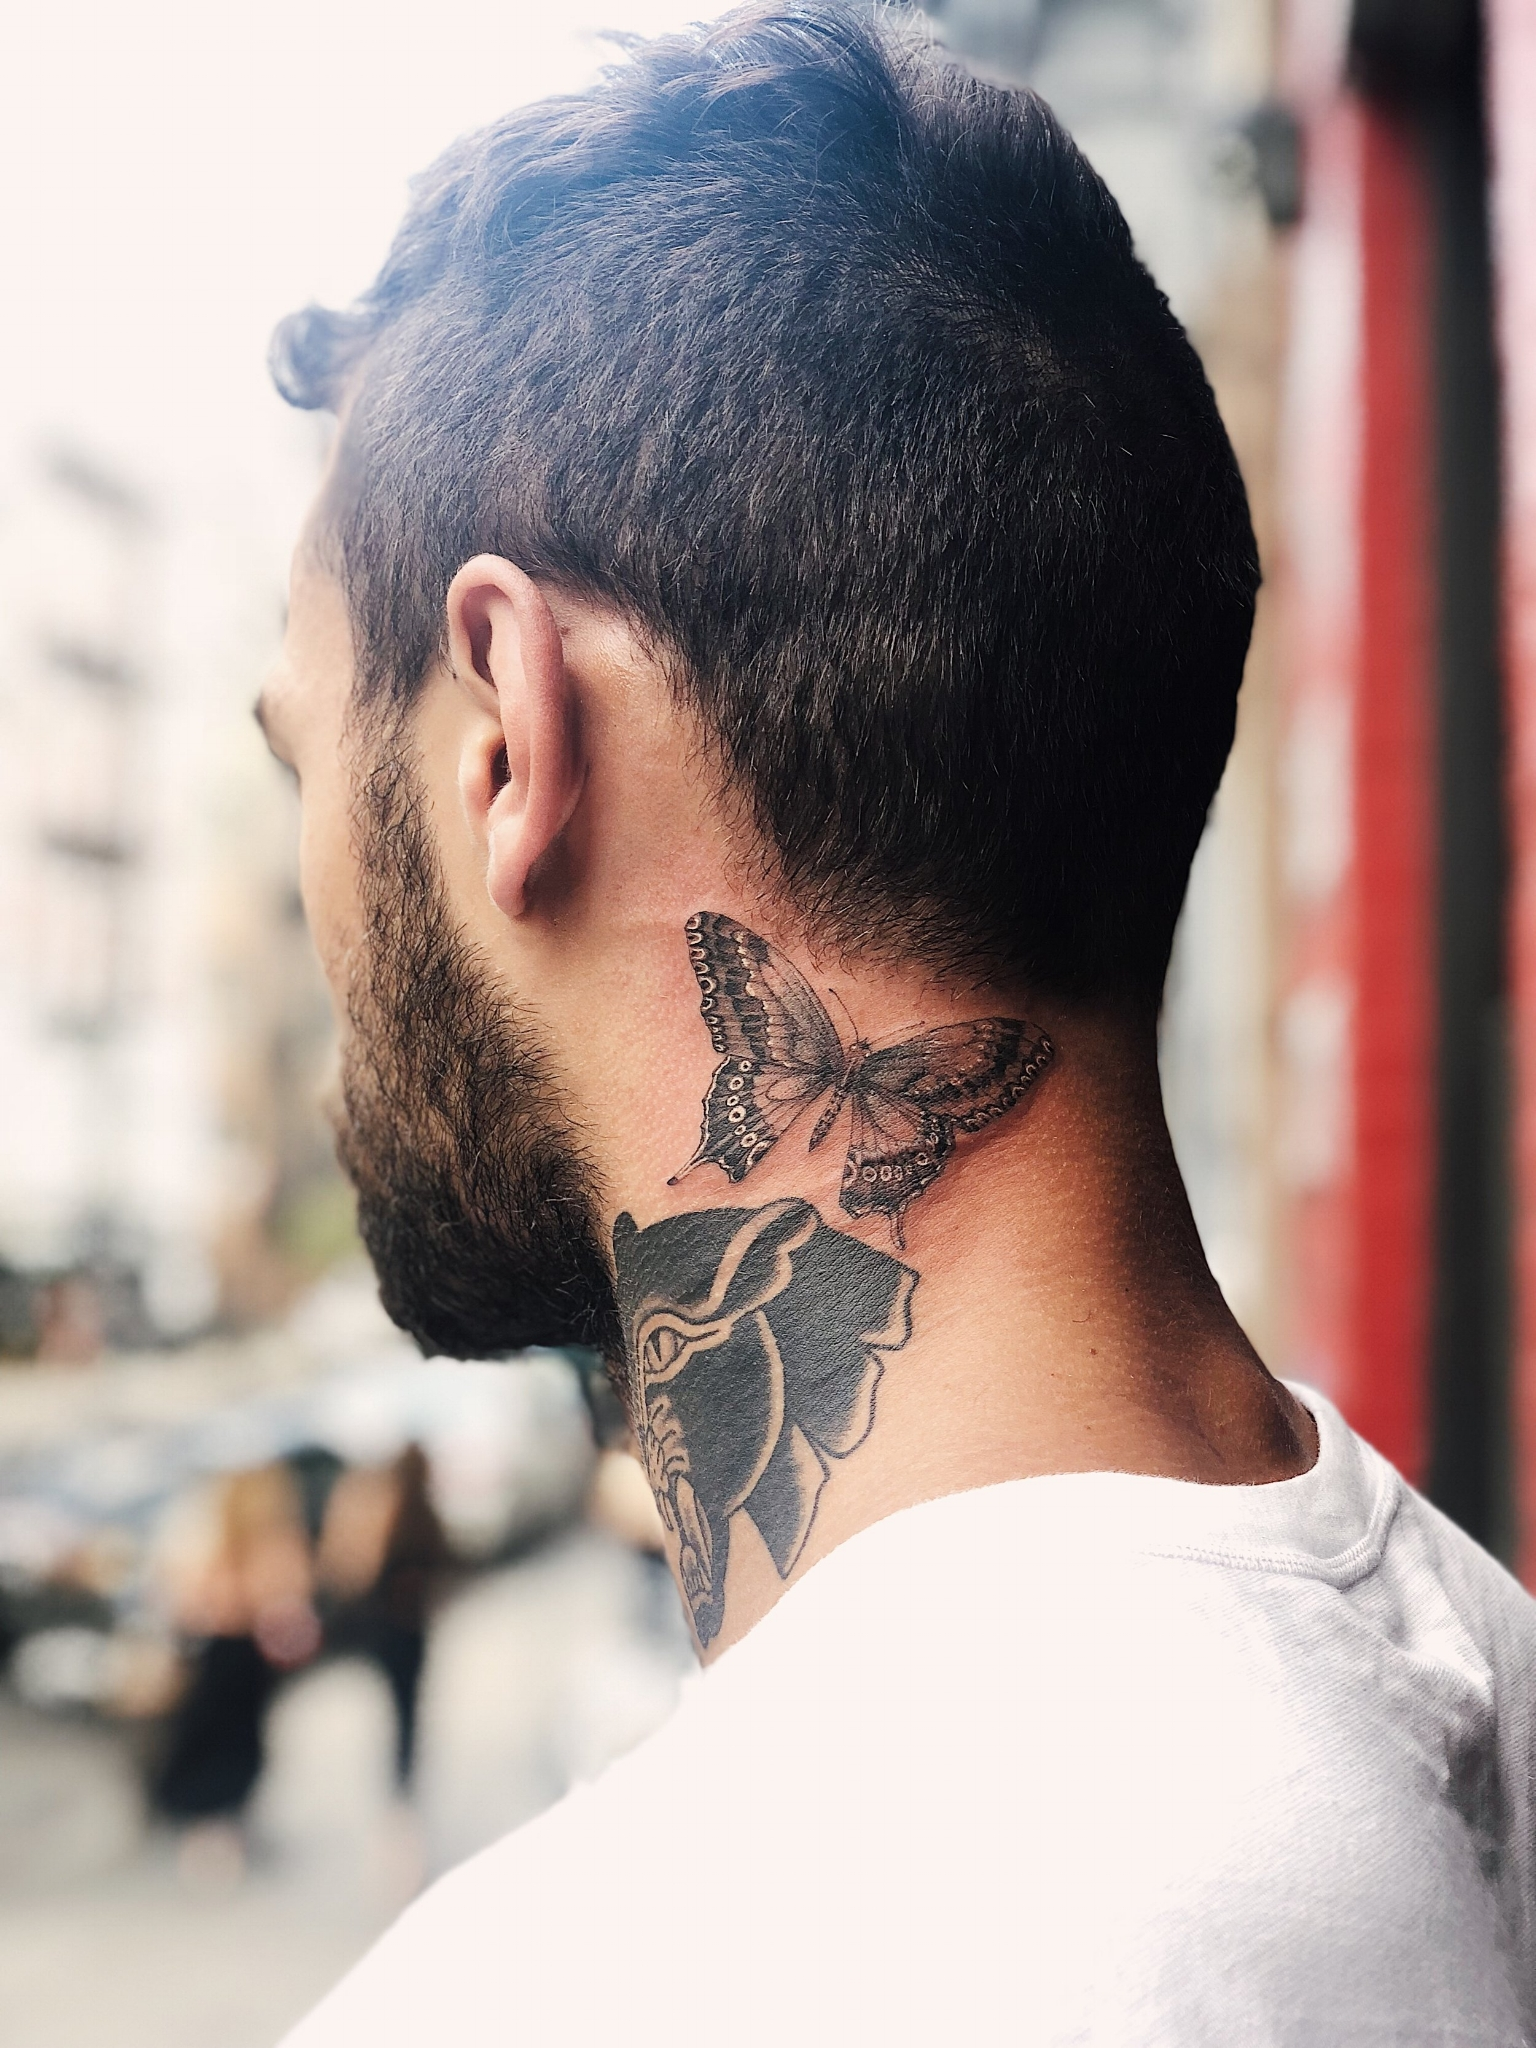 Butterfly-Neck-Tattoo-by-Big-Steve-Fun-City-Tattoo-NYC.JPG